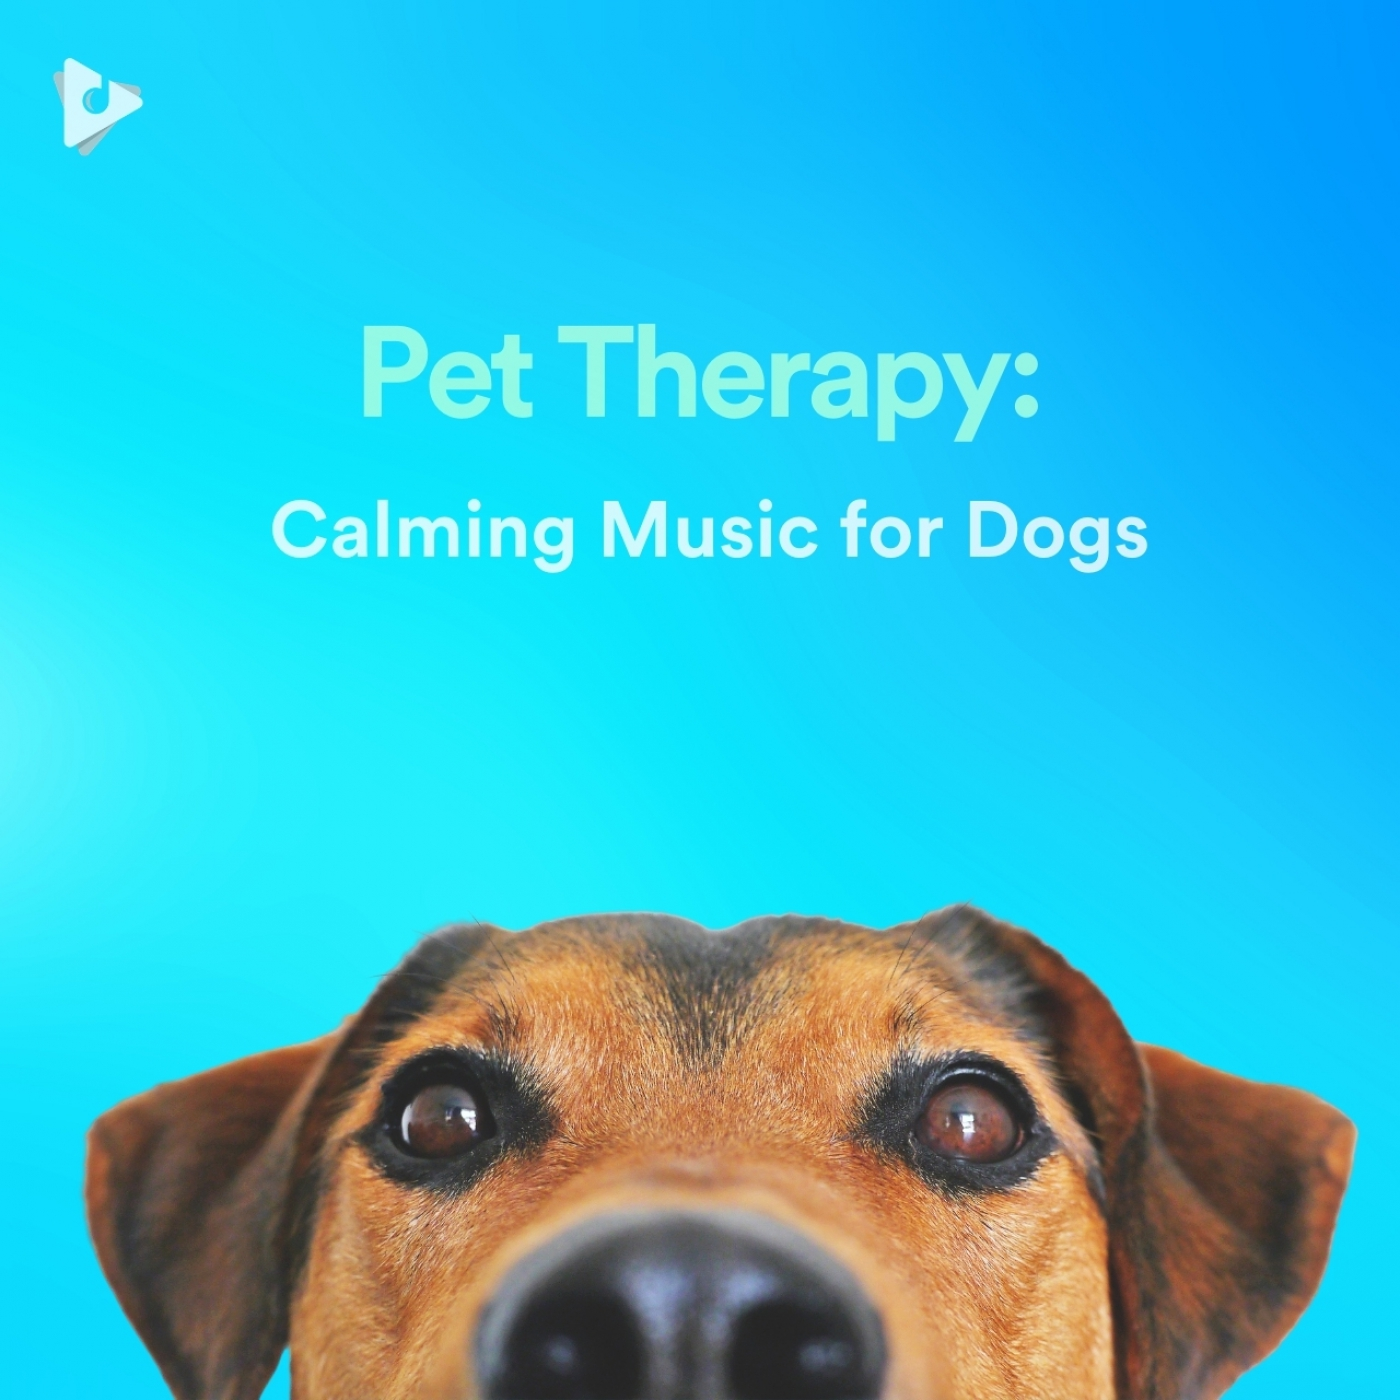 Pet Therapy: Calming Music for Dogs